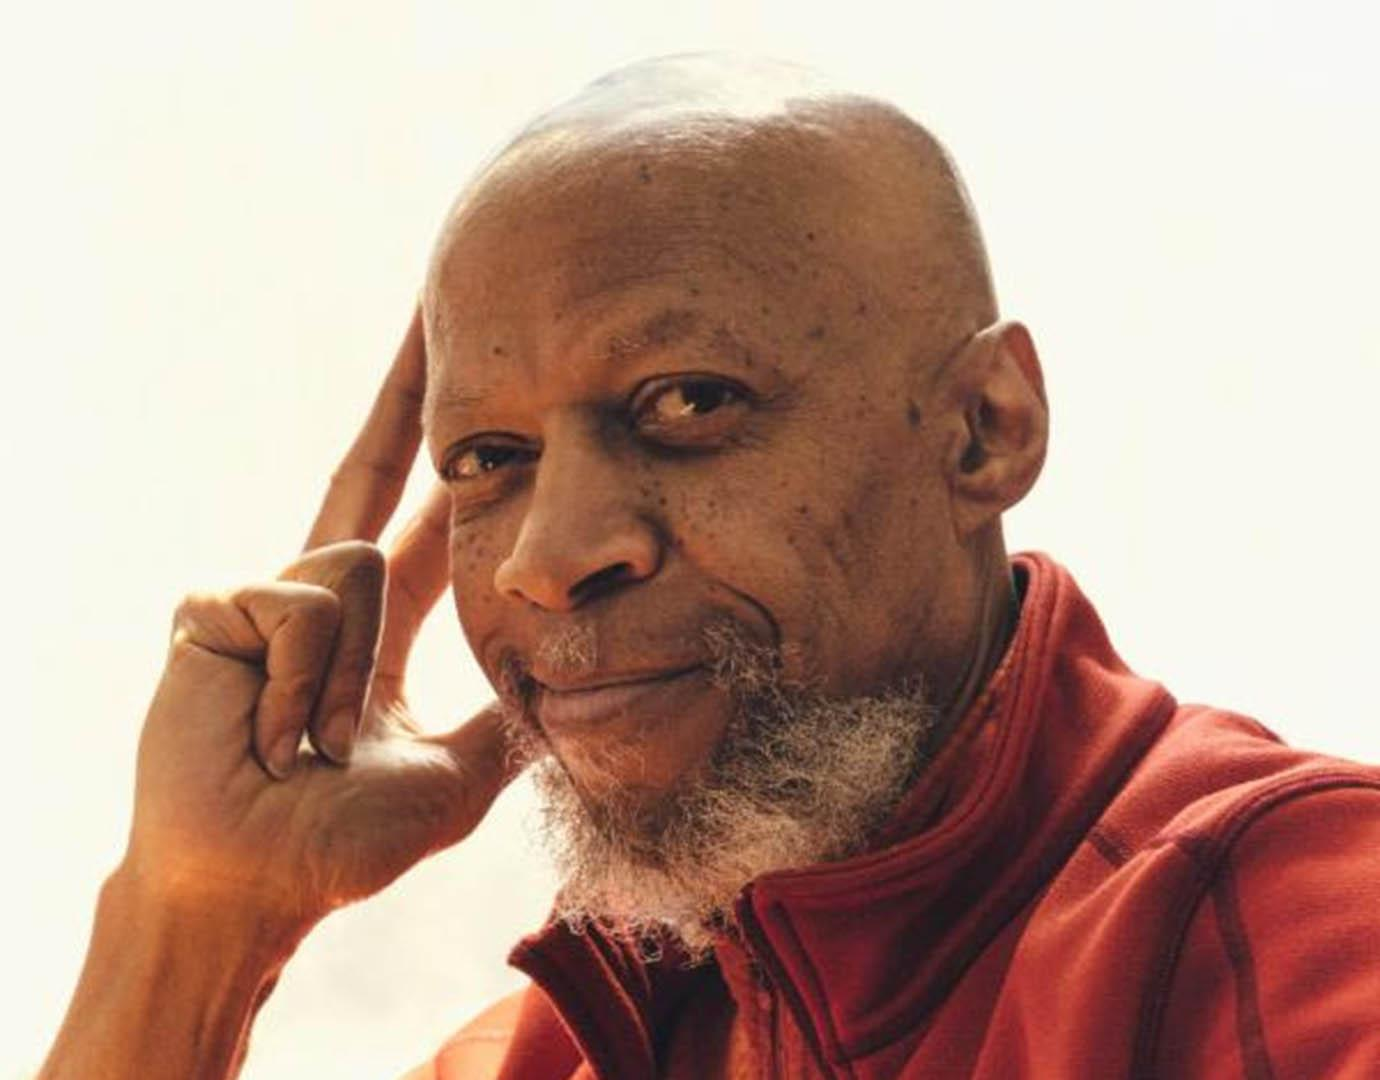 Laraaji to release two new albums this autumn - The Wire